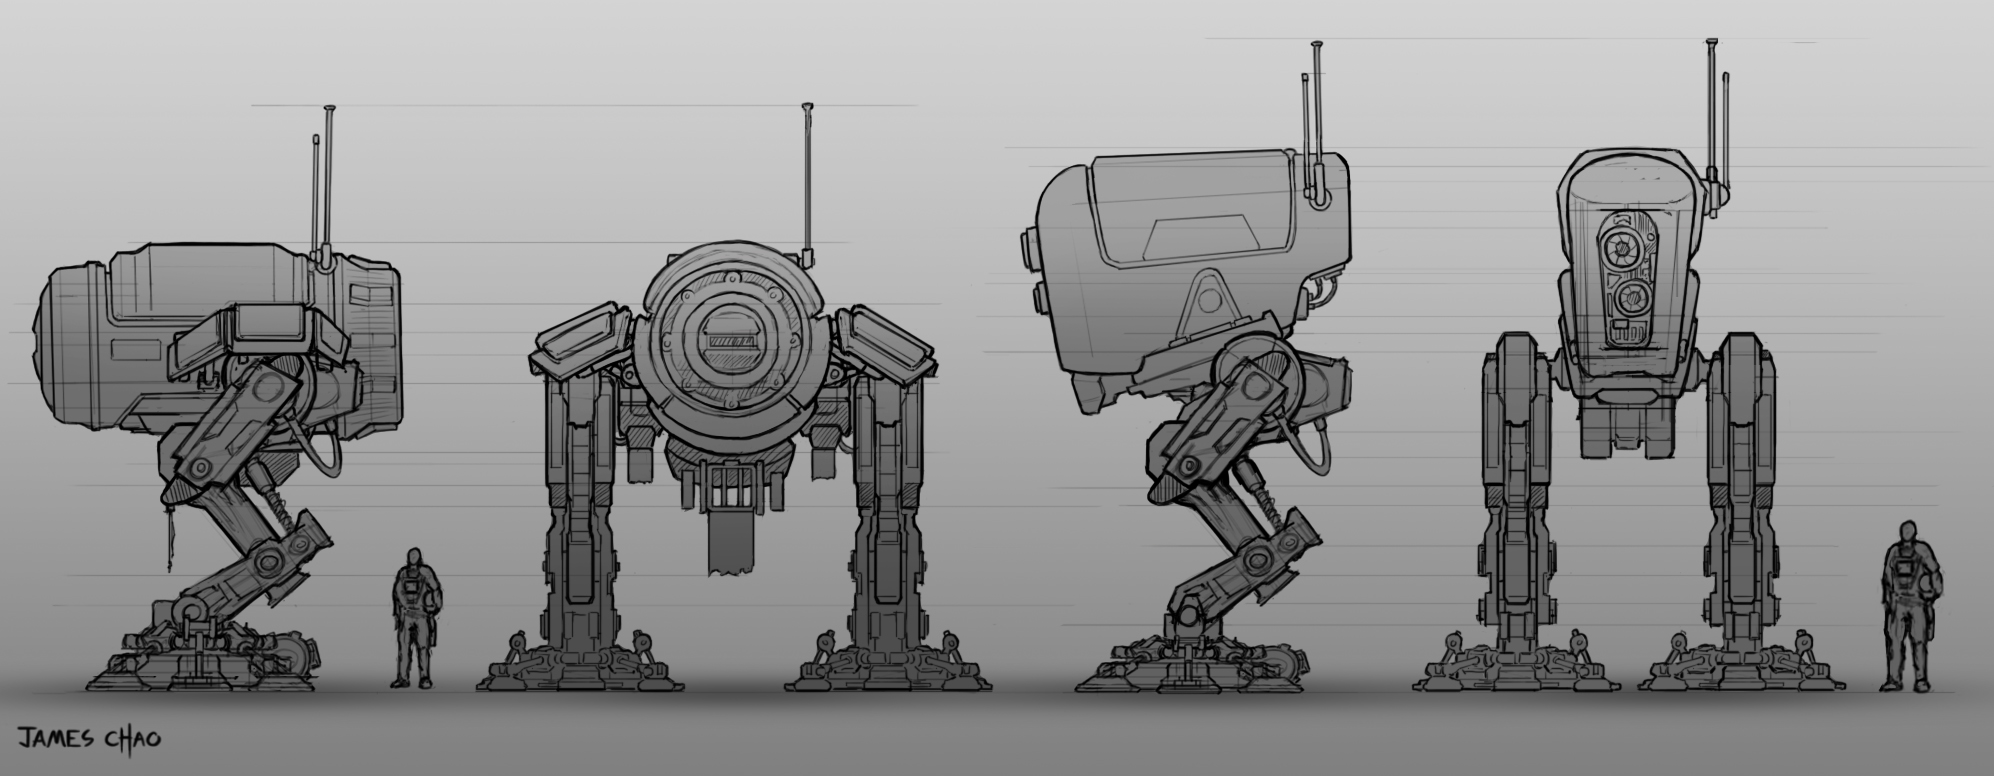 James_Chao_Mech_Sketches